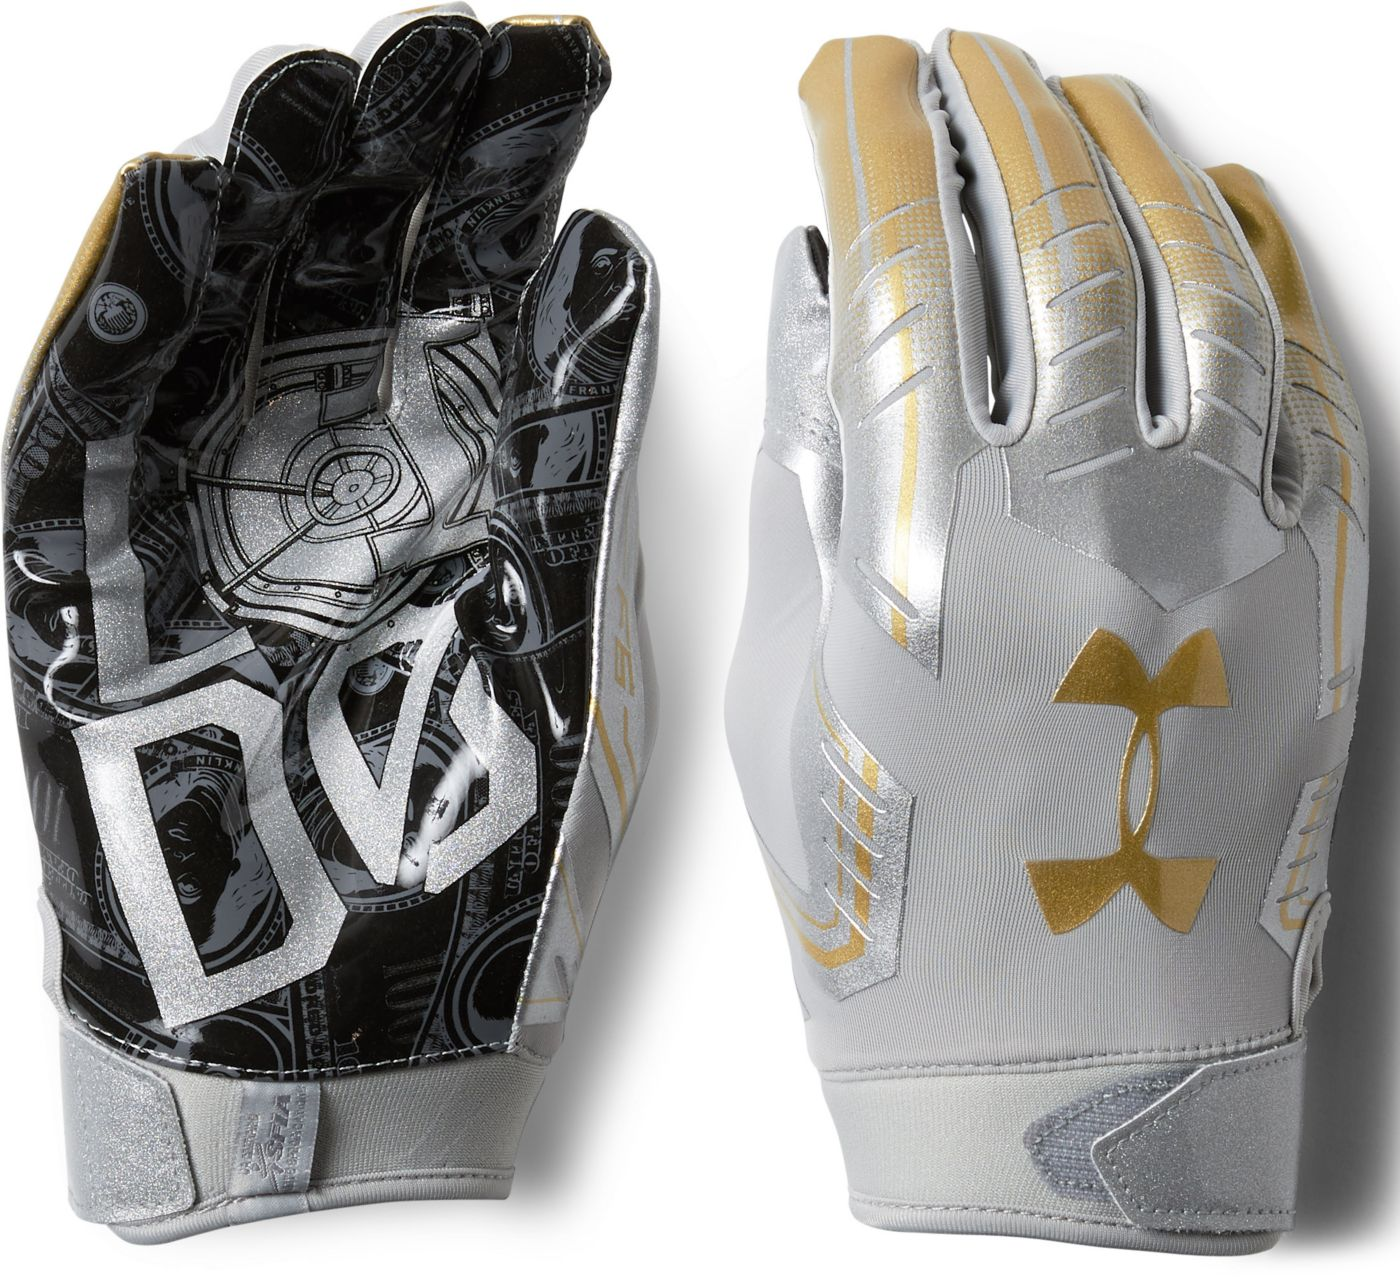 Under Armour Adult Limited Edition F6 Receiver Gloves